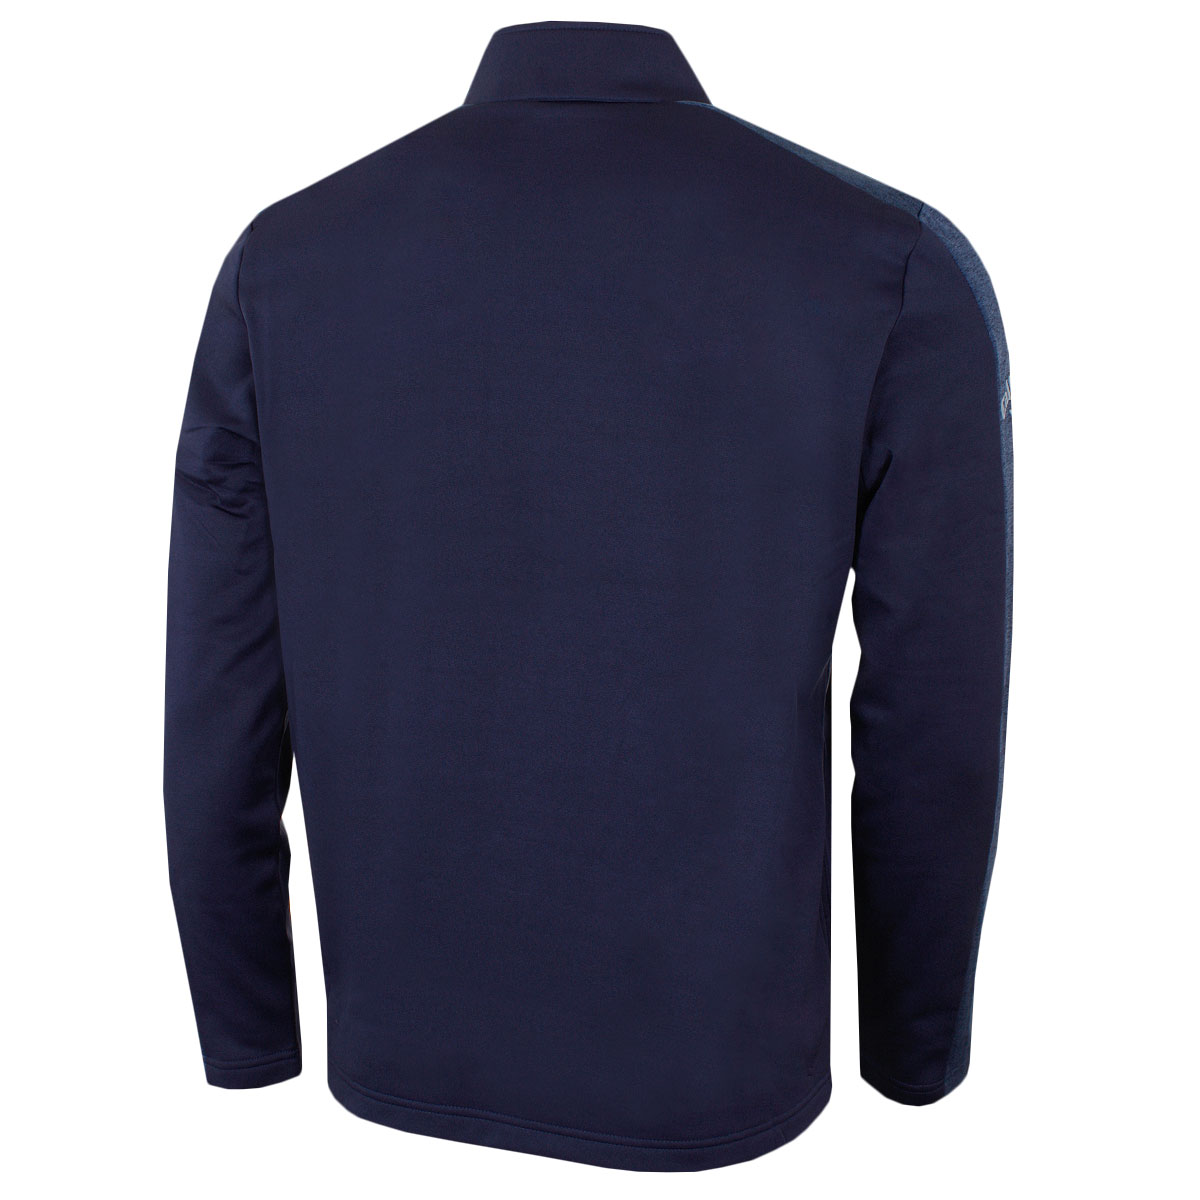 Callaway-Mens-Opti-Therm-Colour-Block-1-4-Zip-Golf-Sweater-50-OFF-RRP thumbnail 6